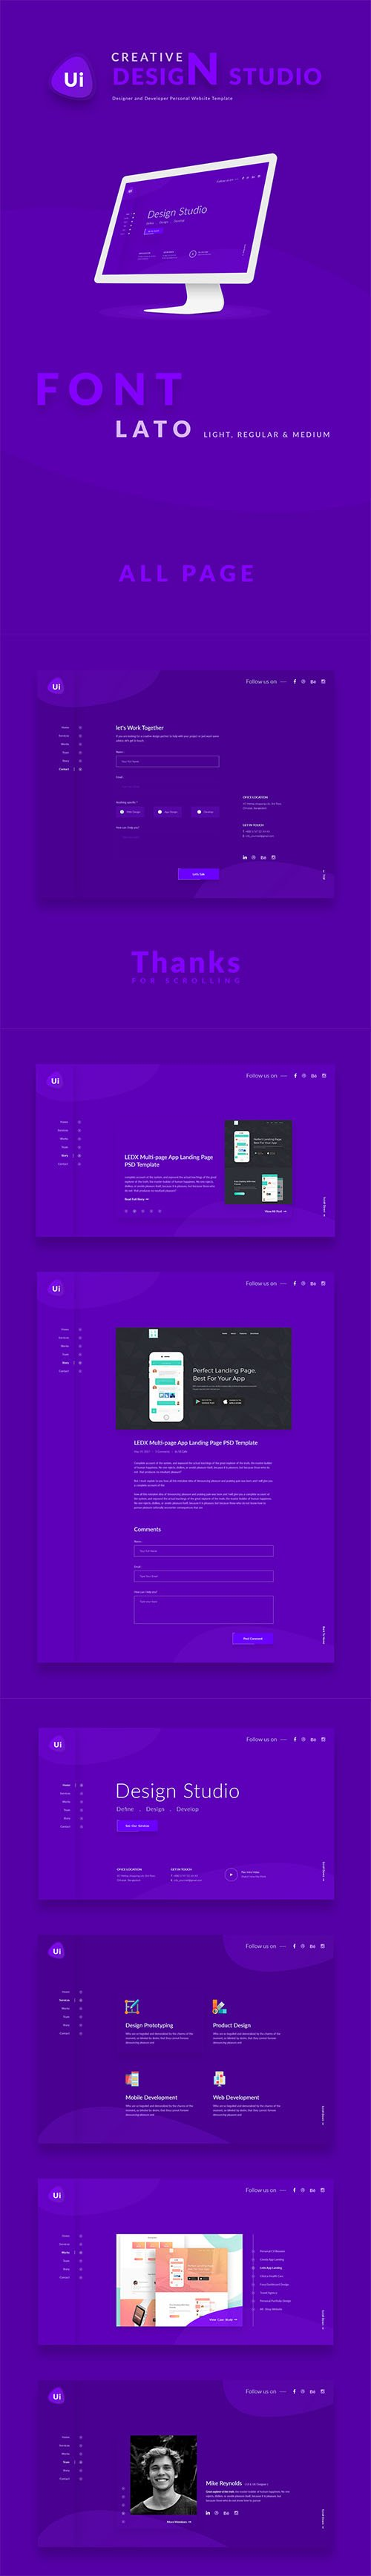 UI Creative Studio Template